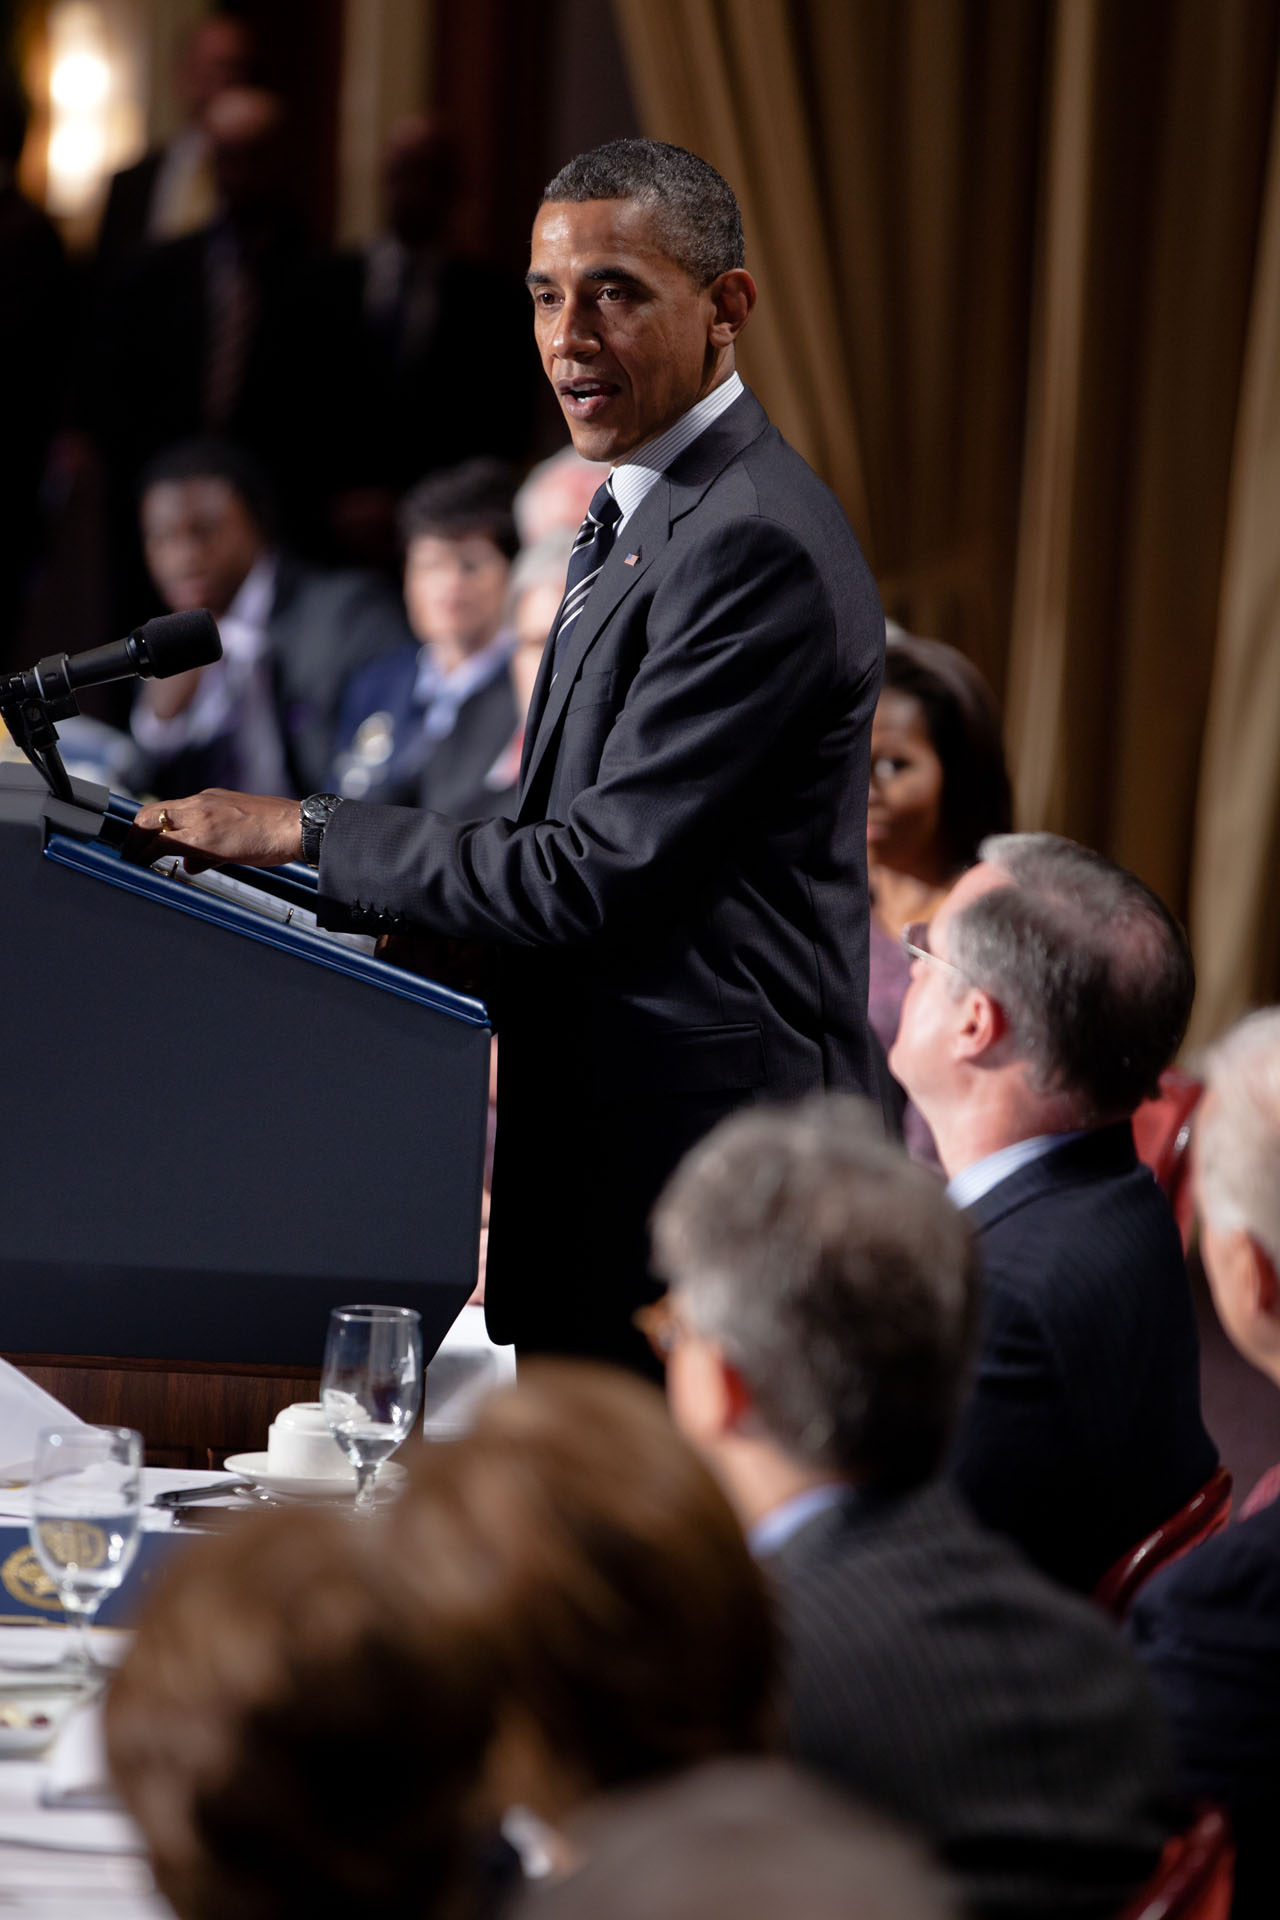 President Barack Obama at National Prayer Breakfast (February 2, 2012)